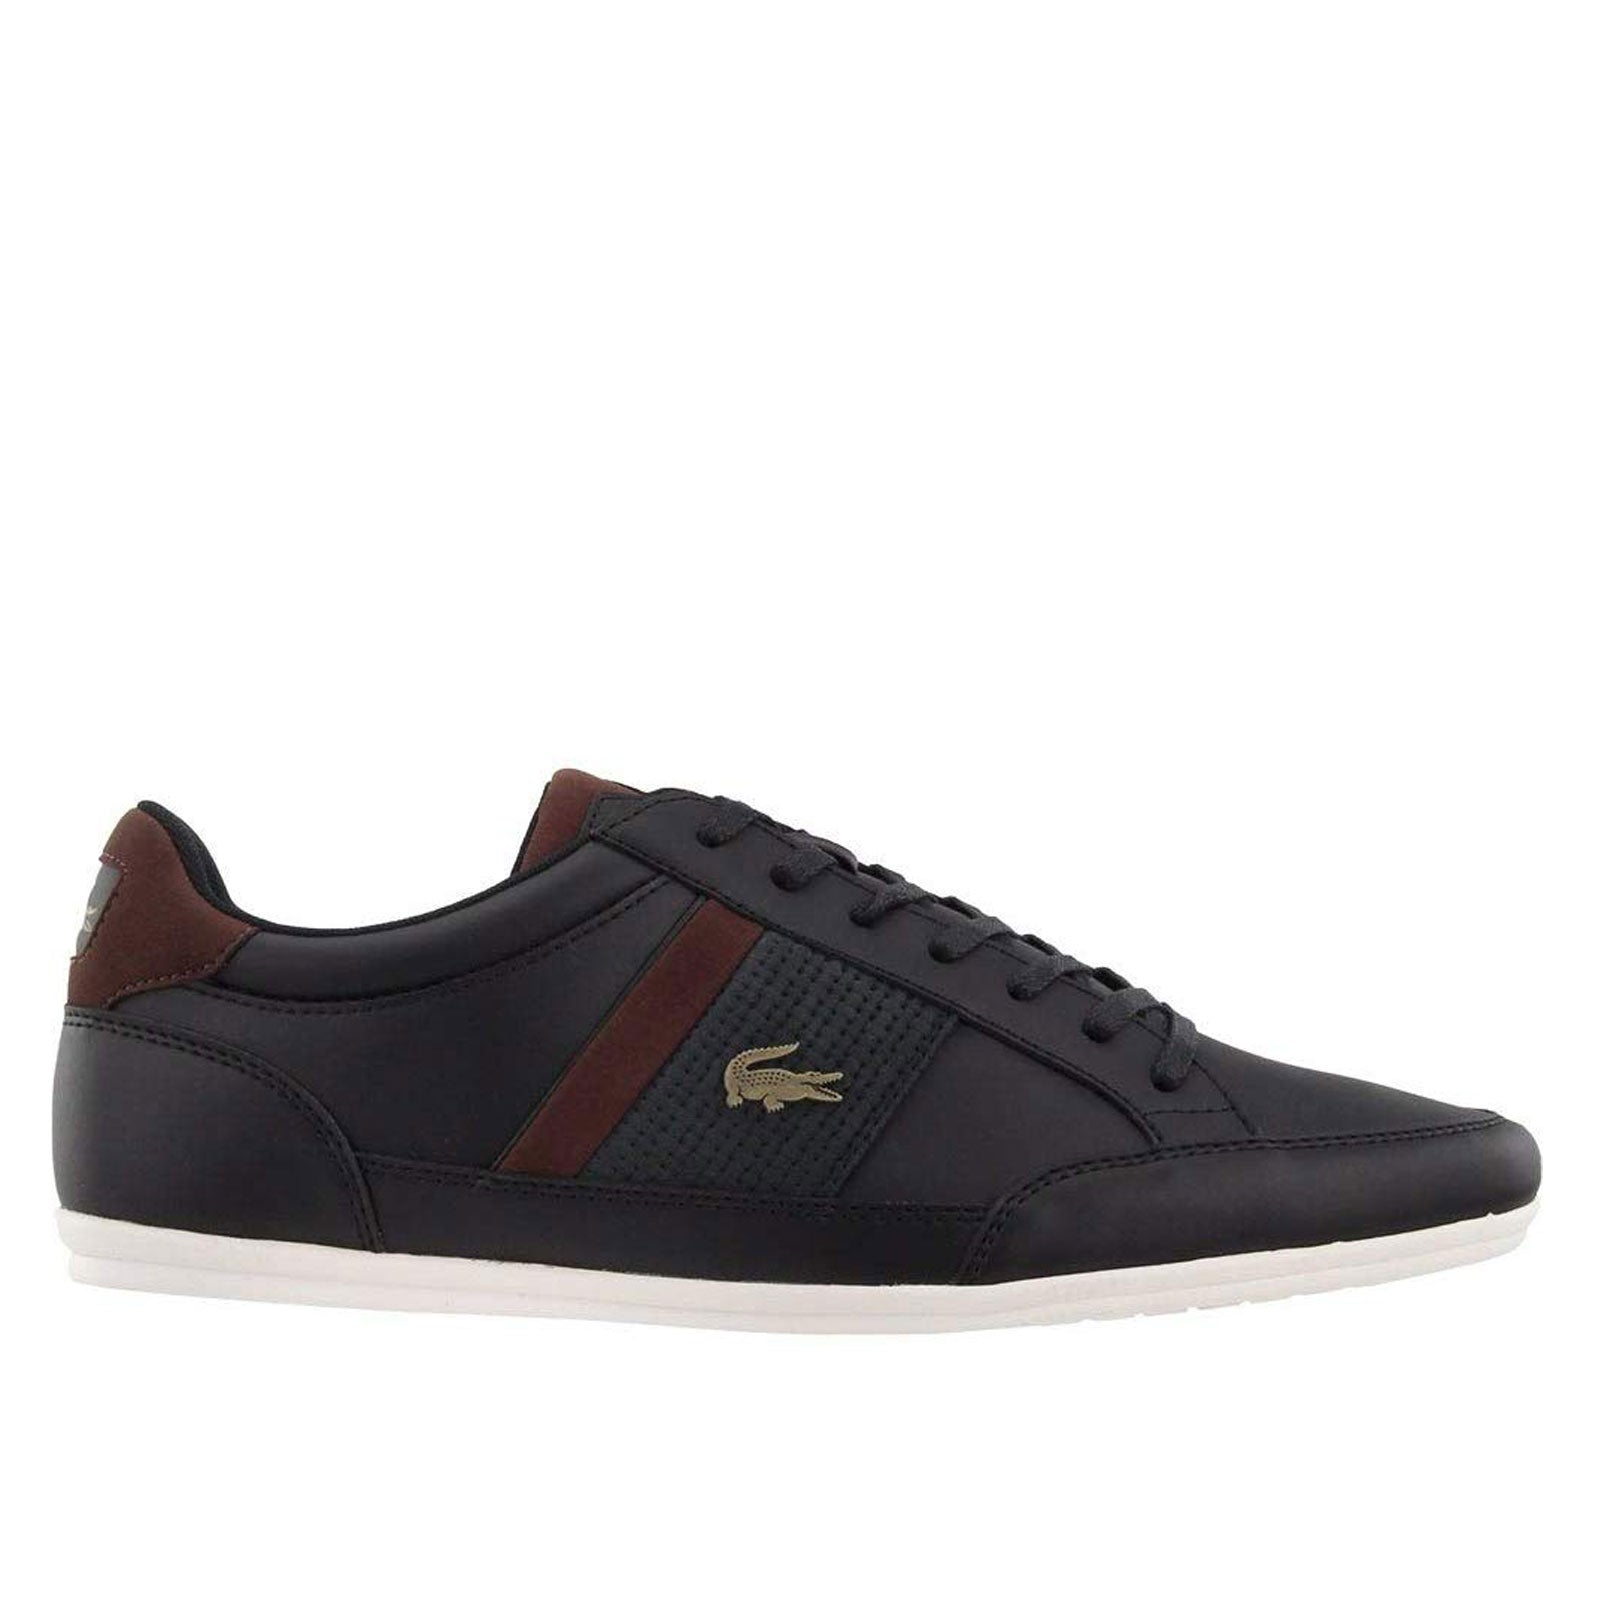 Lacoste Chaymon 120 39CMA00122M5 (Black/Dark Brown)